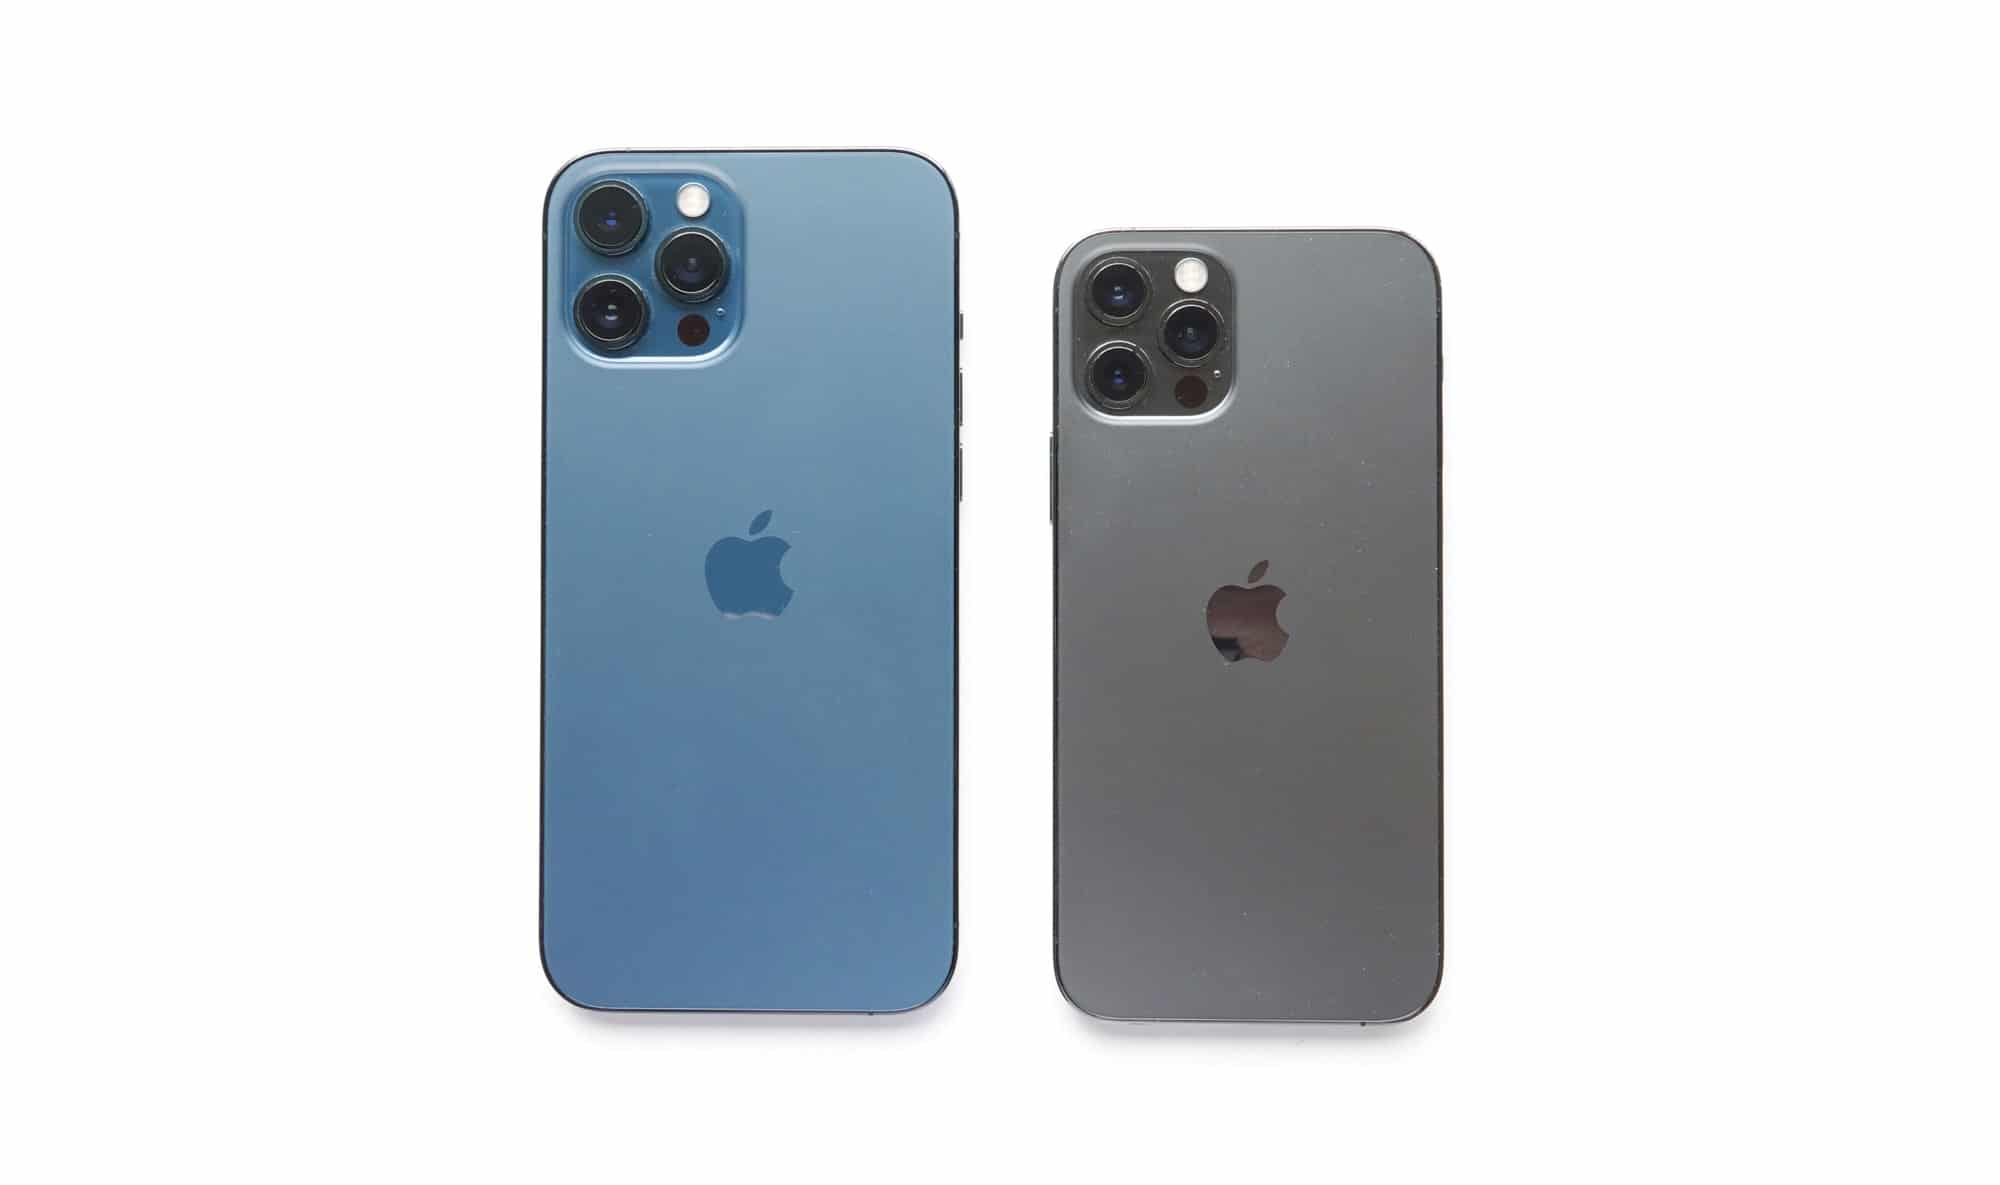 The size differences between the iPhone 12 Pro Max (left) and the iPhone 12 Pro (right)